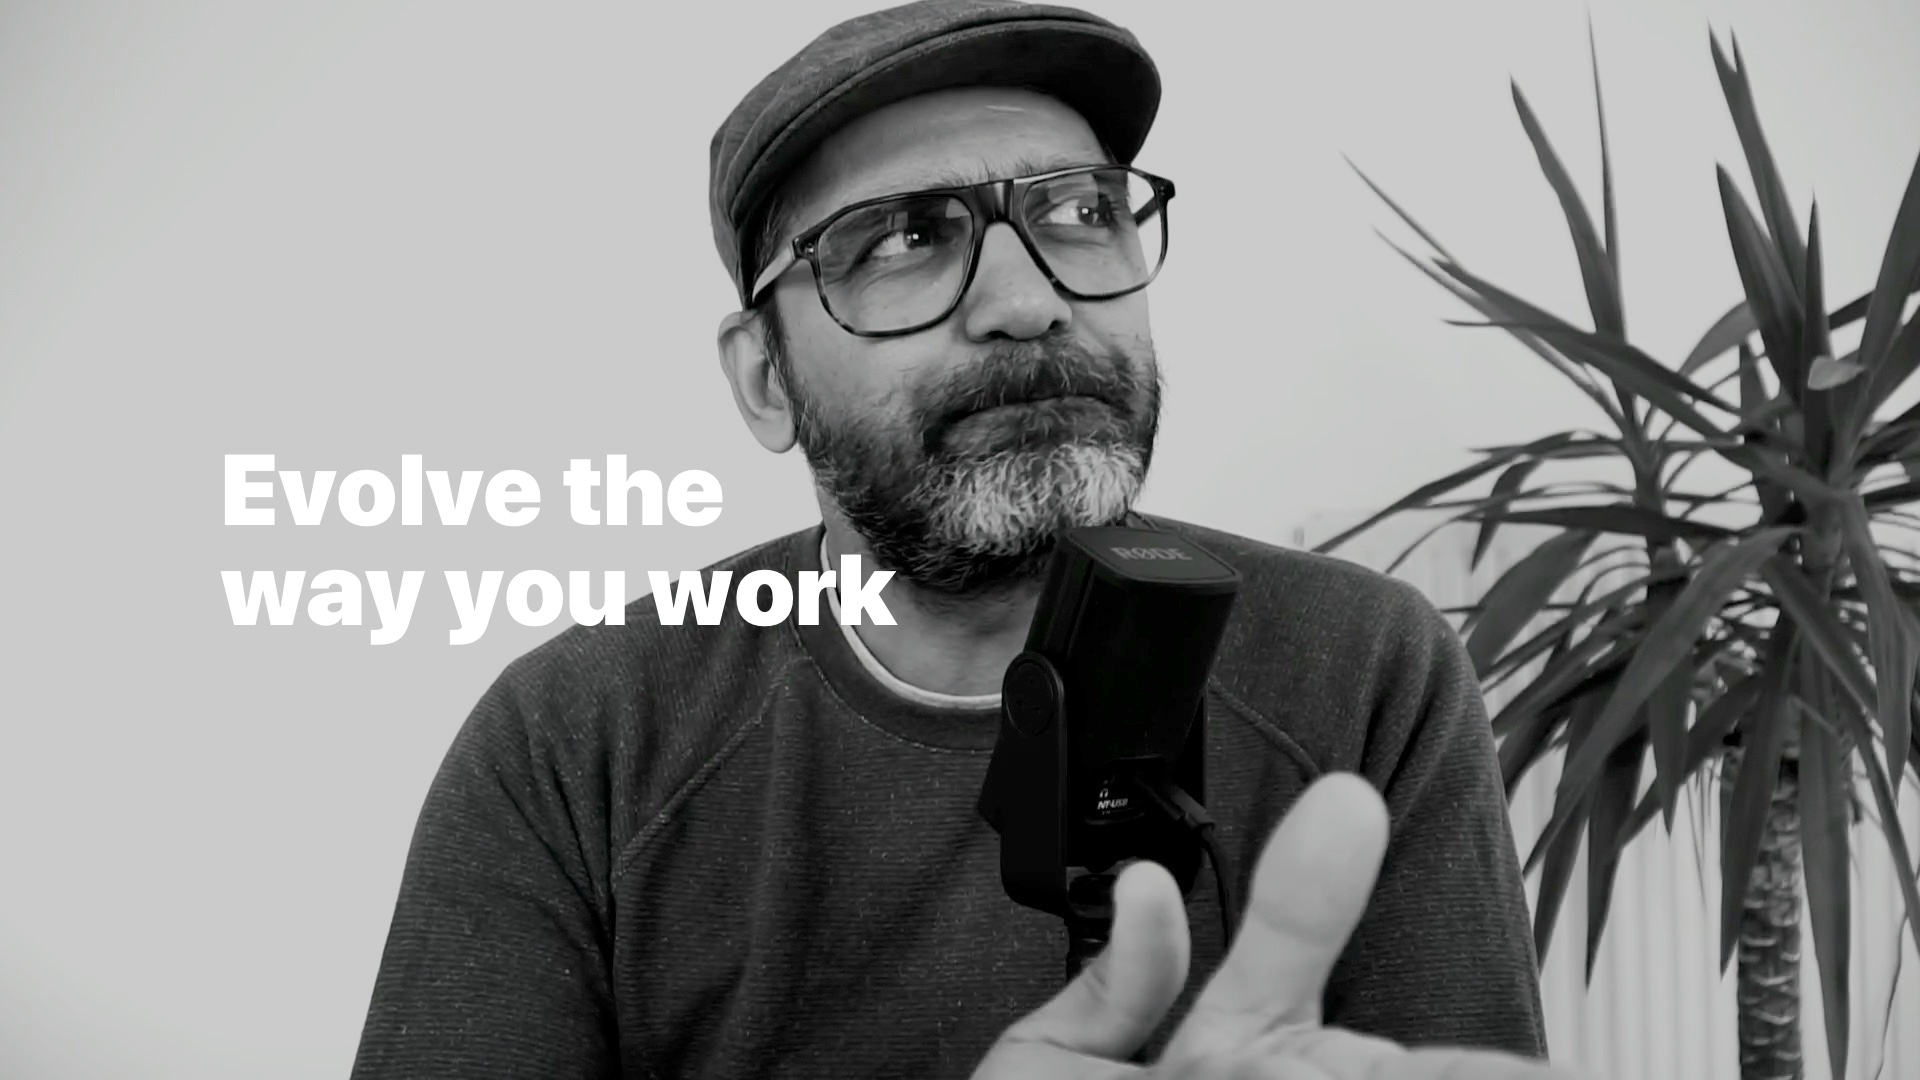 Evolve the way you work